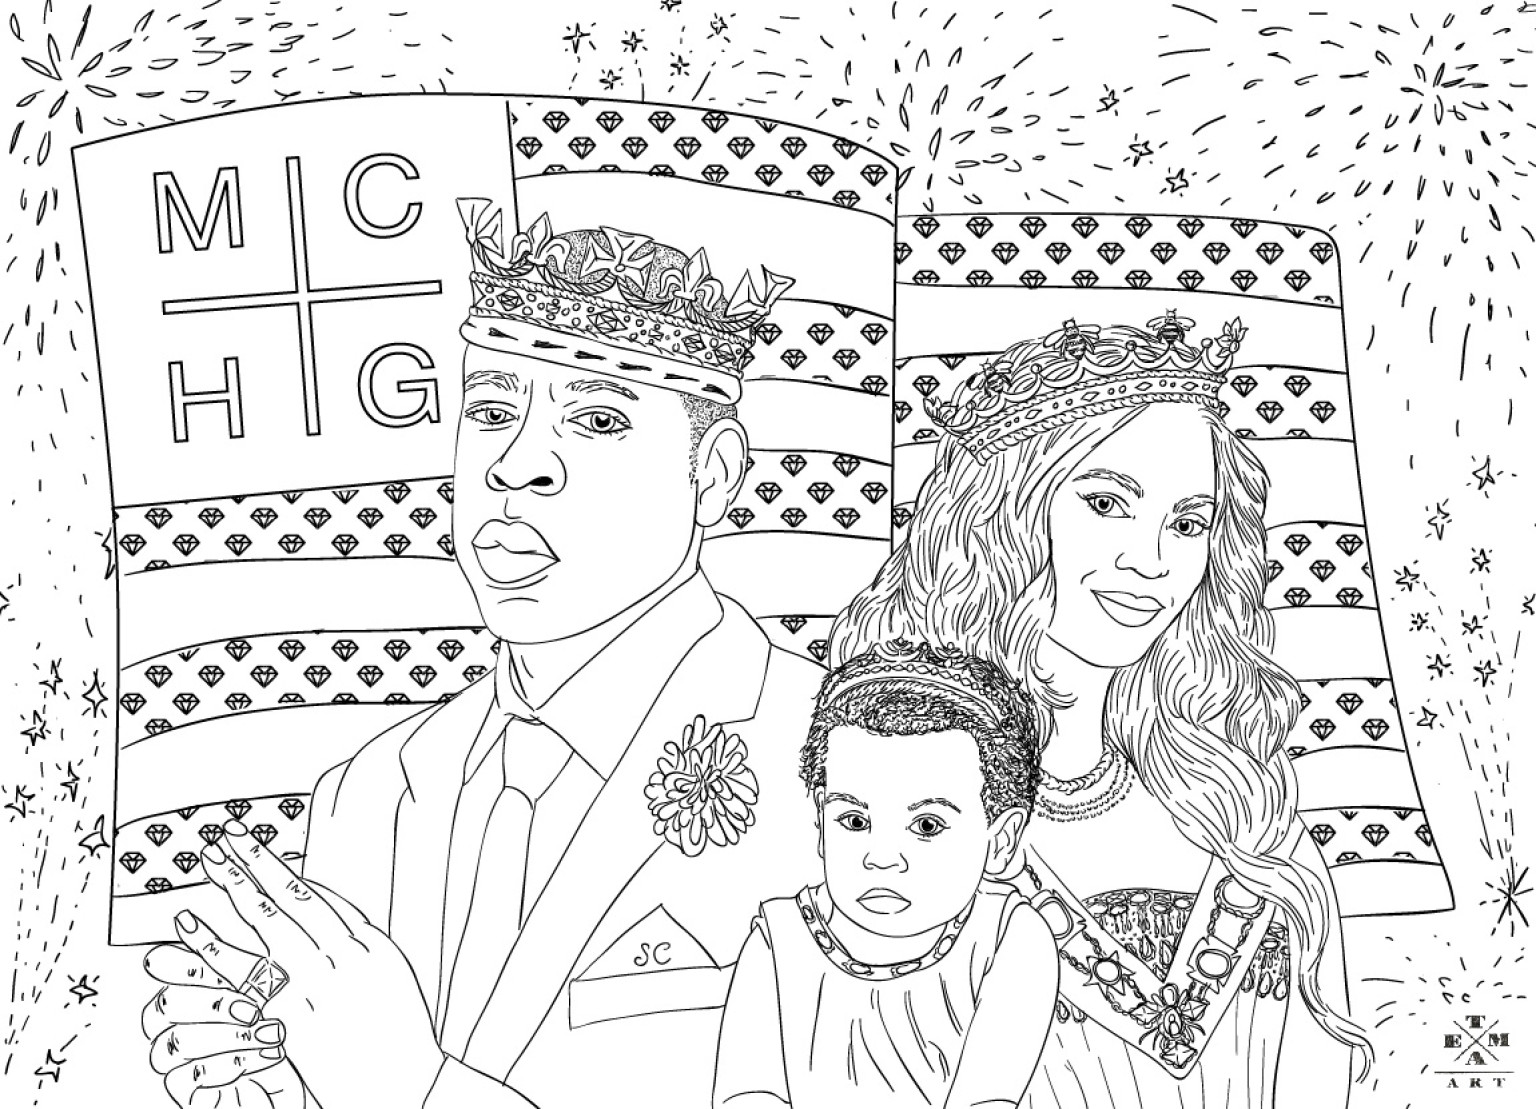 Jay-Z, Beyonce & Blue Ivy Coloring Page: The July 4th